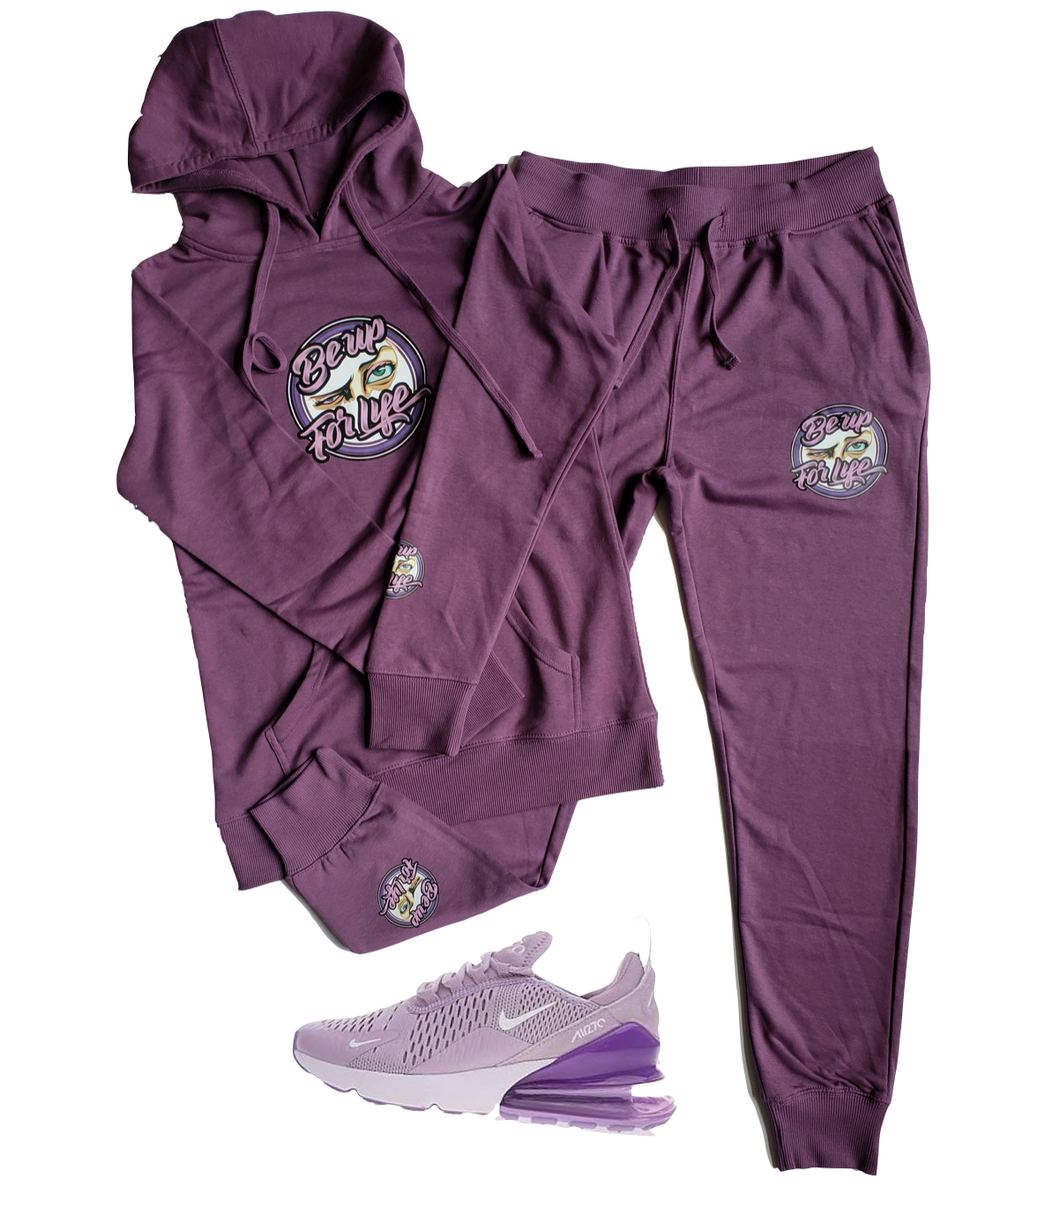 Ladies French Terry Jogger Set w/ Pressed Be Up Ladies Logo (Shoes Not For Sale)